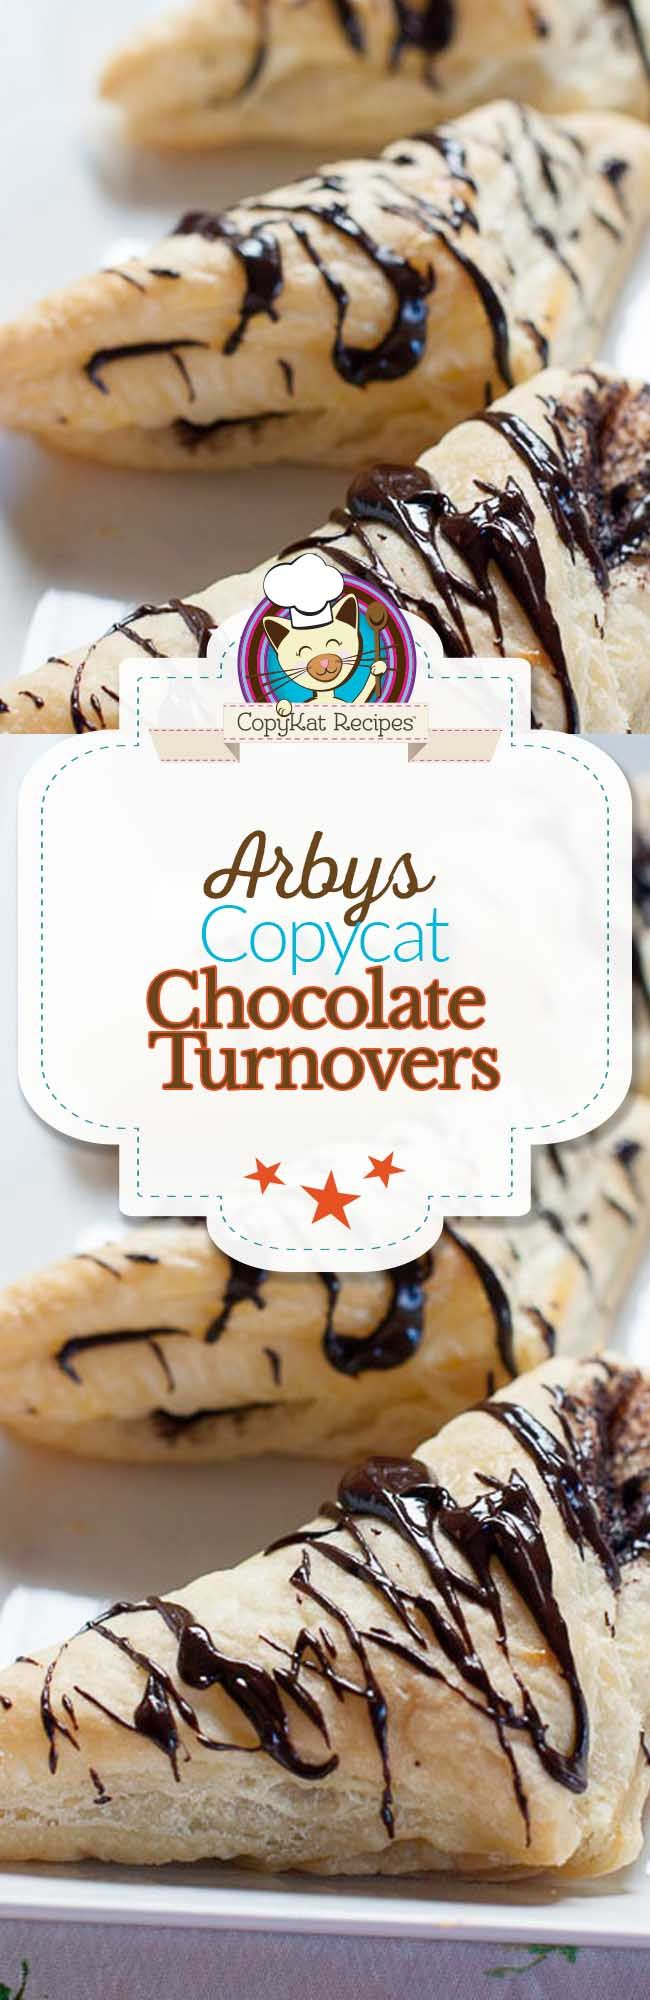 Arby's makes amazing chocolate turnovers, and you can too.  This copycat recipe will have you preparing chocolate turnovers just like a famous pastry chef.